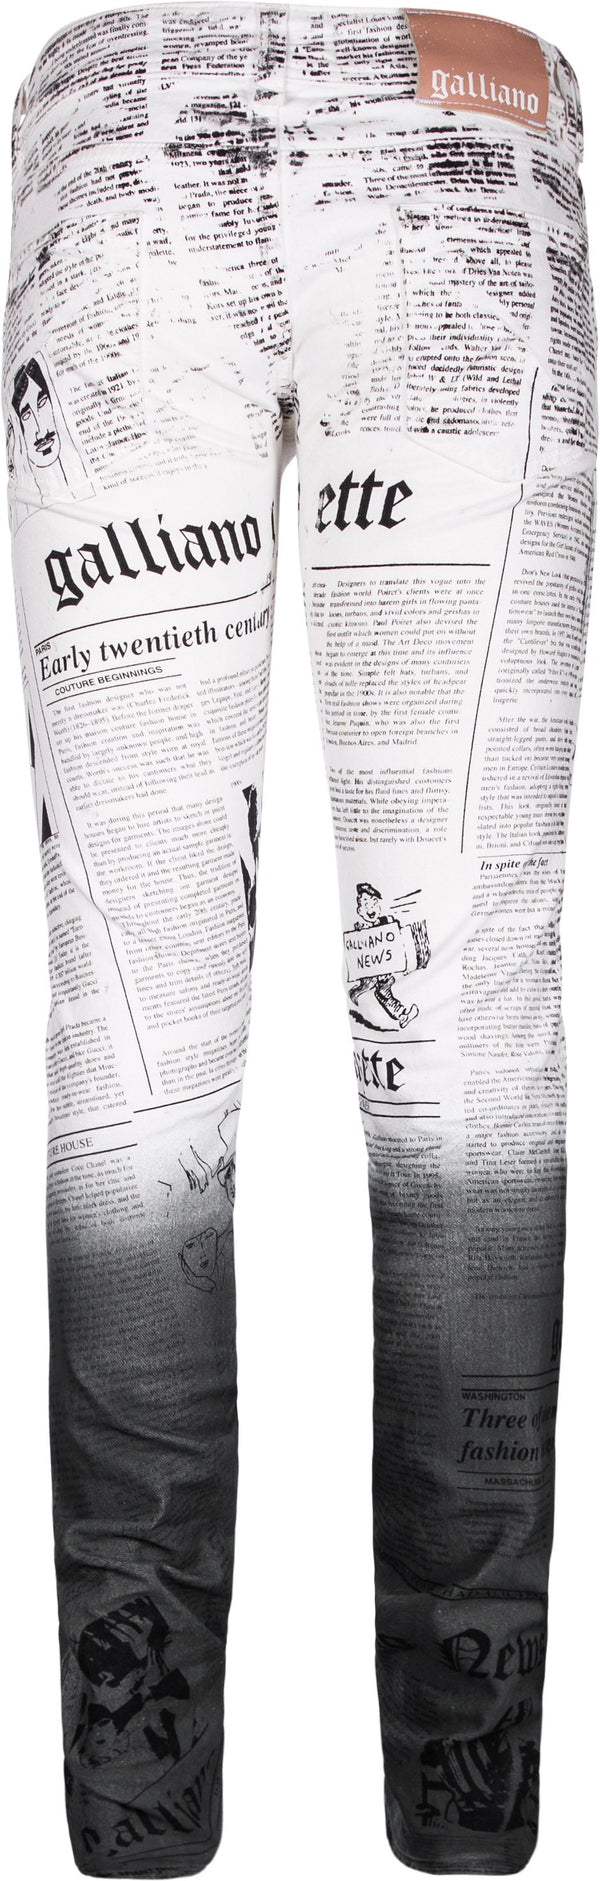 John Galliano Gazette Ombre Newspaper Jeans